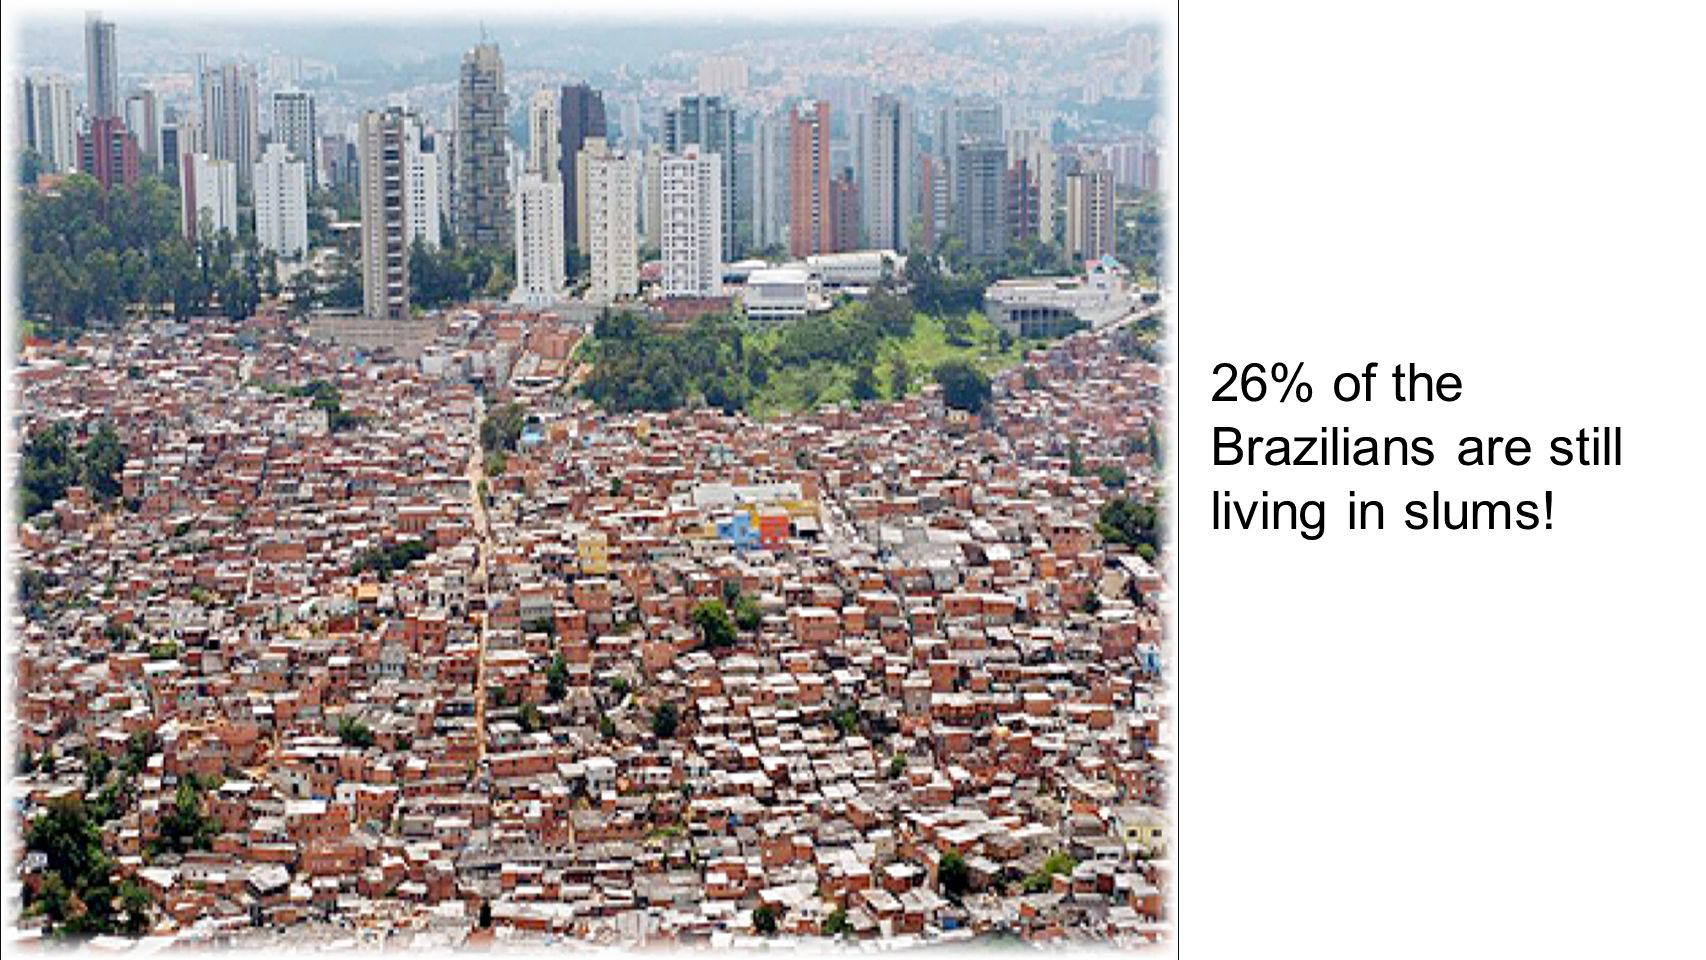 26% of the Brazilians are still living in slums!